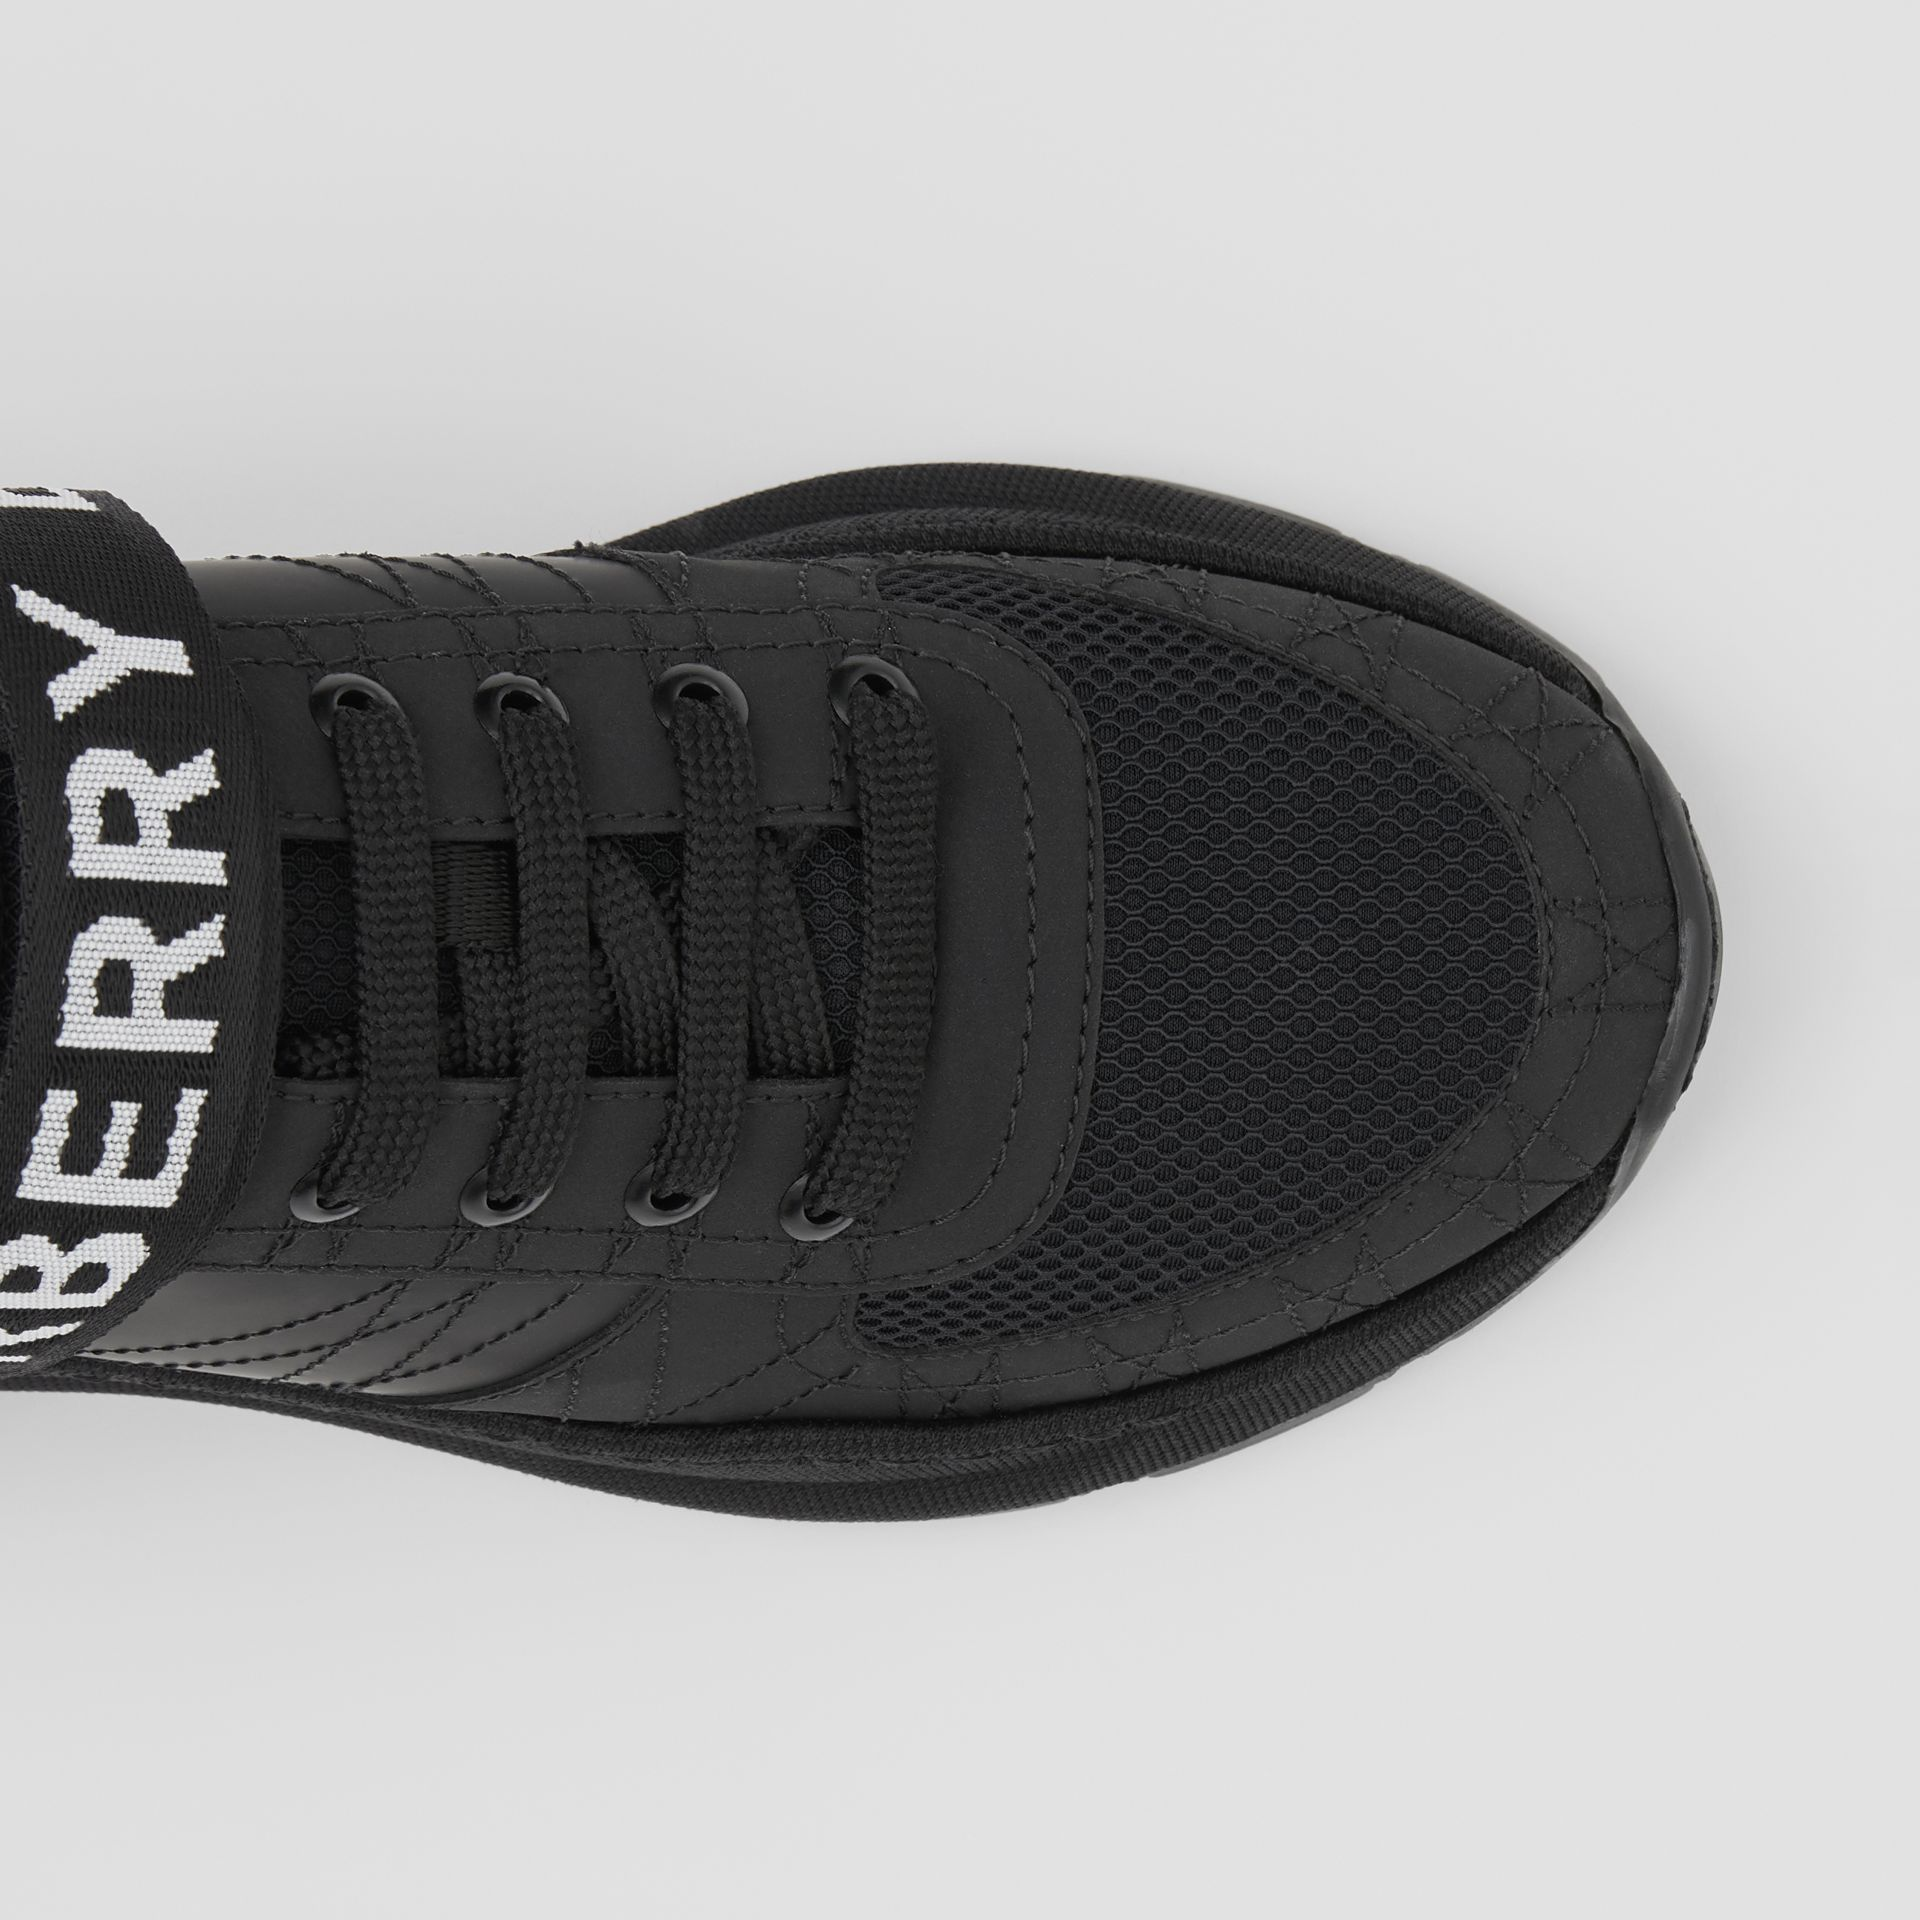 Logo Detail Leather, Nubuck and Mesh Sneakers in Black - Women | Burberry United States - gallery image 1